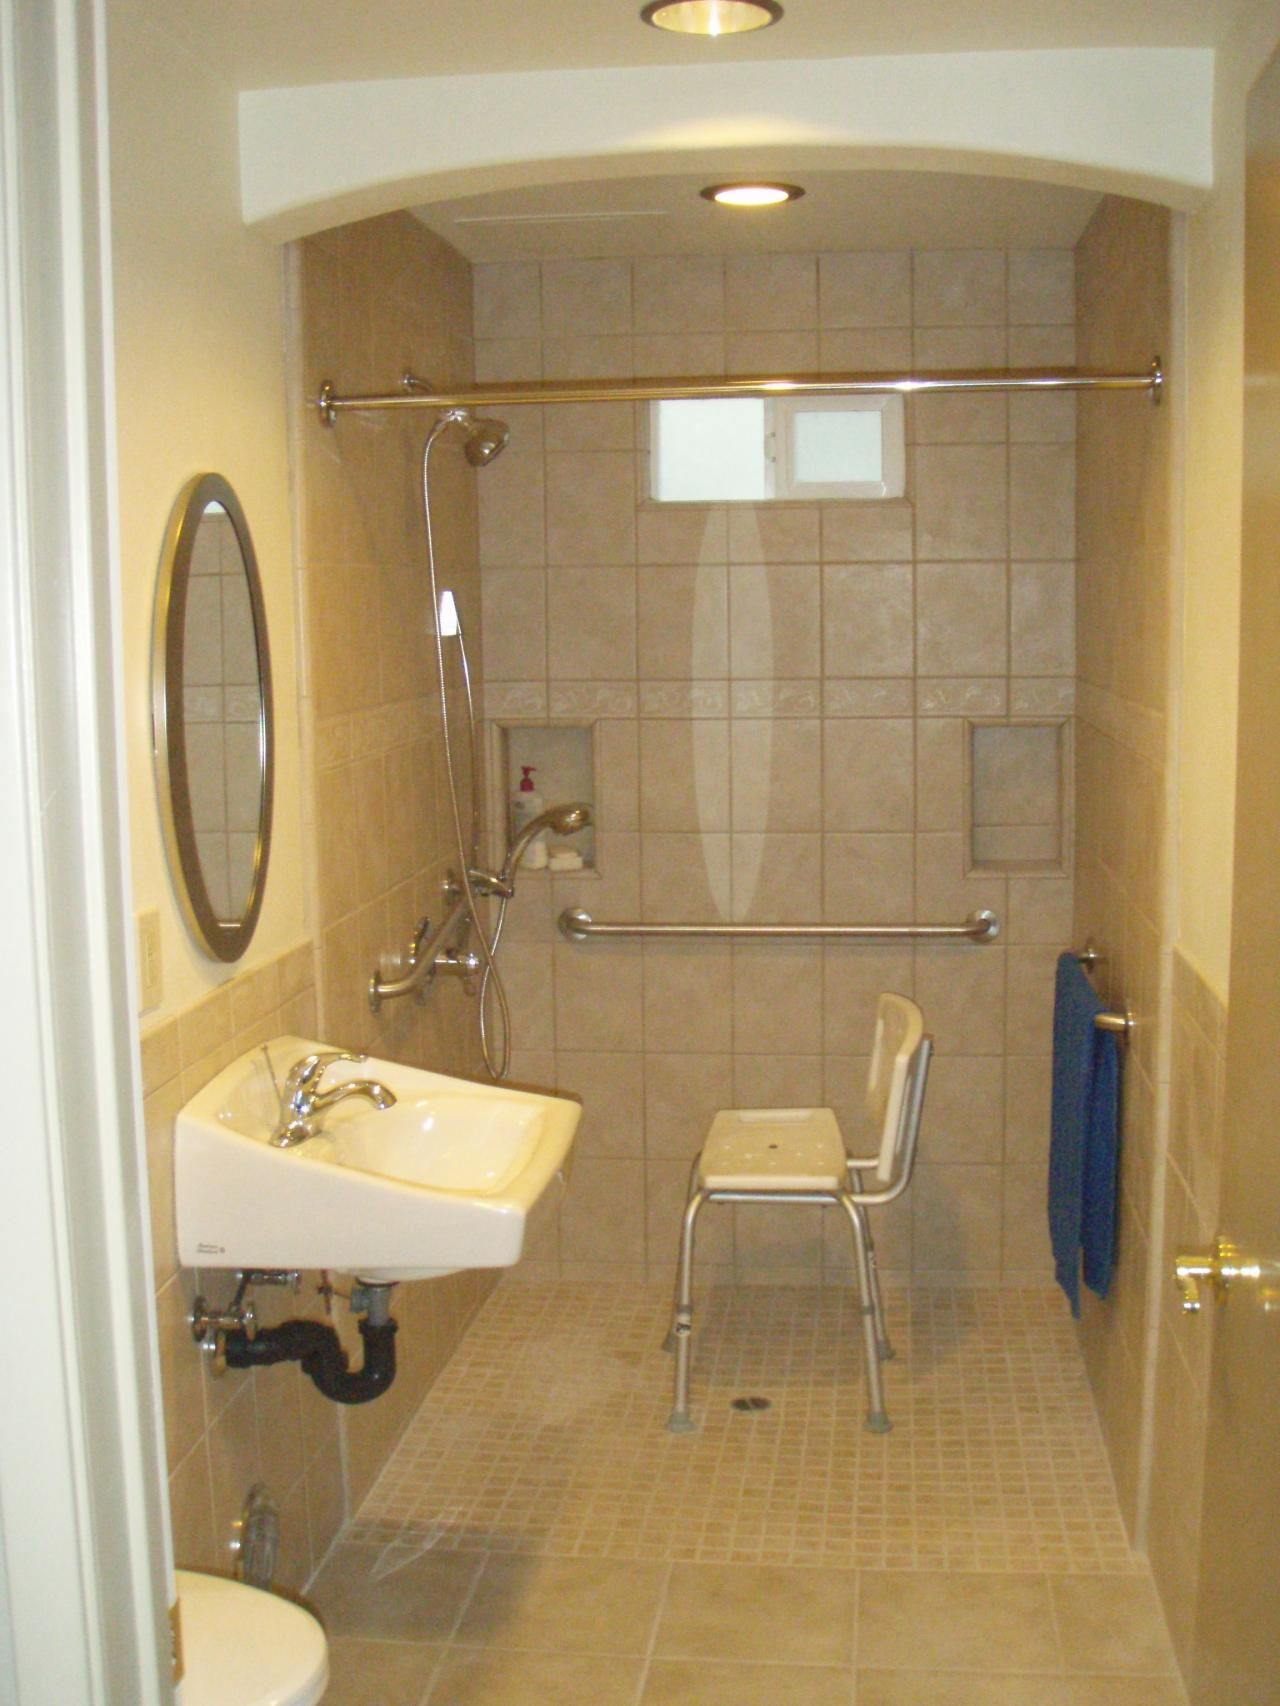 Bathroom remodels for handicapped handicapped bathroom Handicap accessible bathroom design ideas